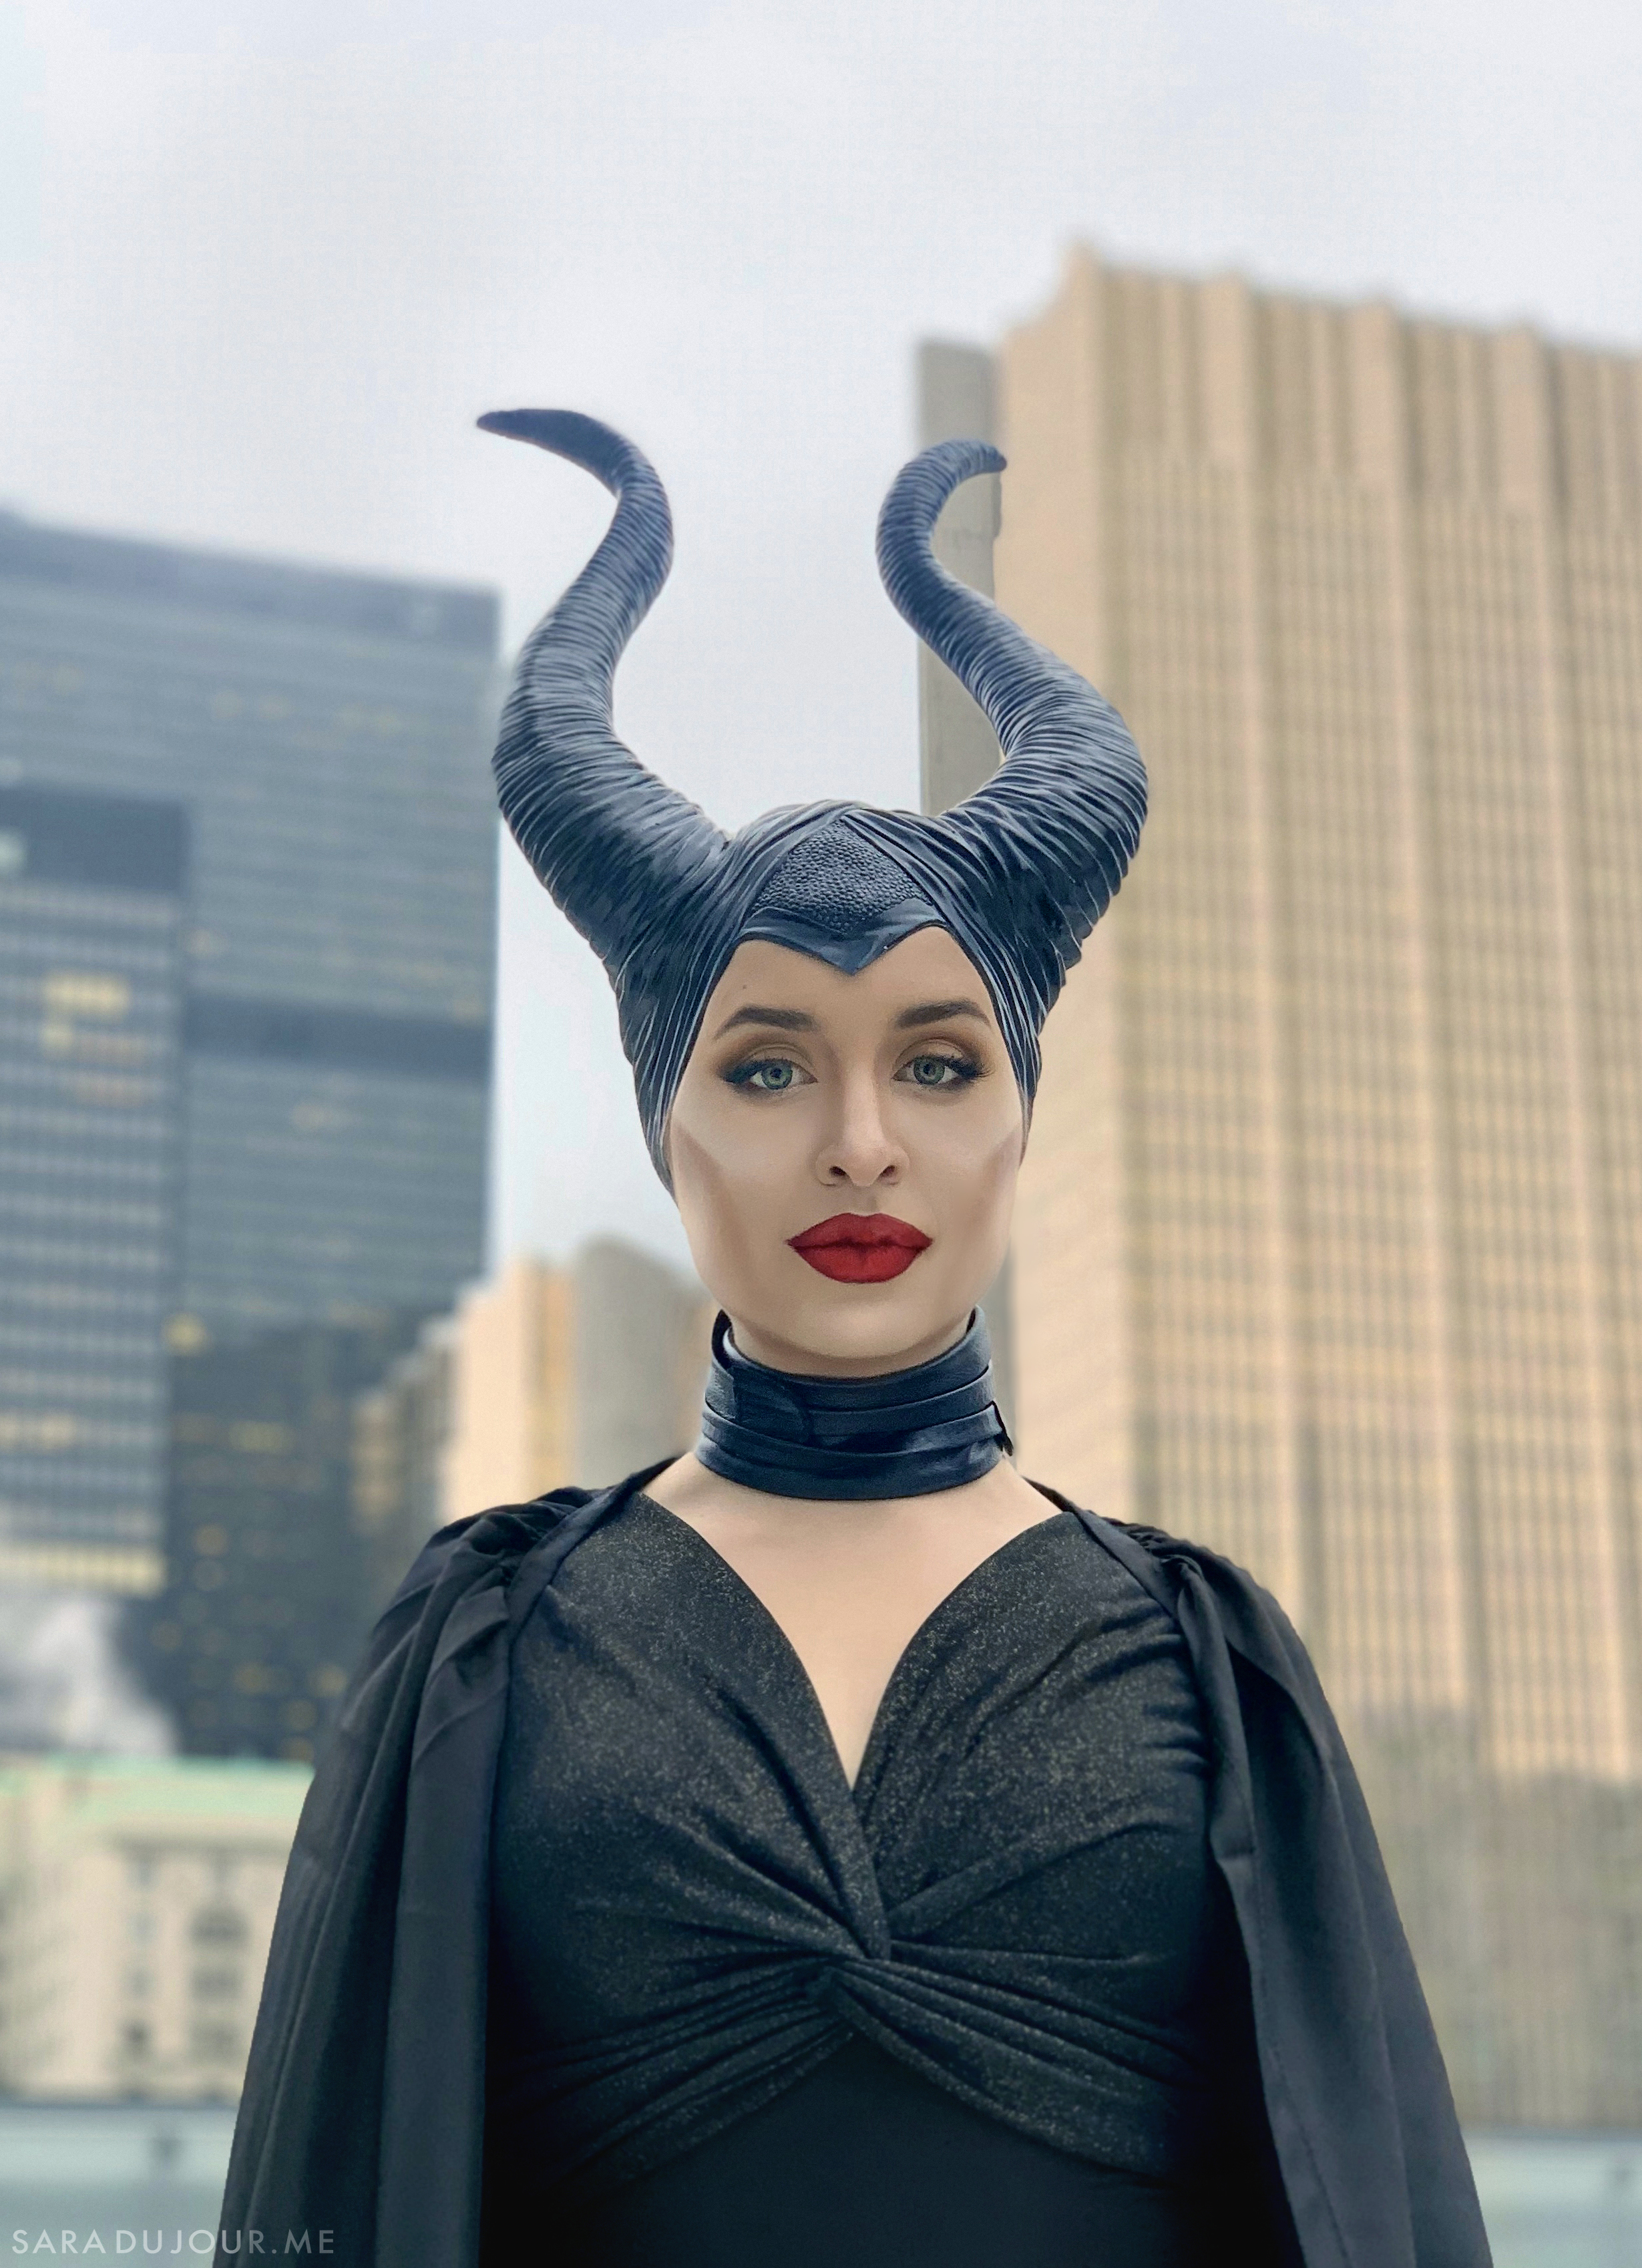 Maleficent Movie Cosplay Makeup Tutorial and Costume | Sara du Jour